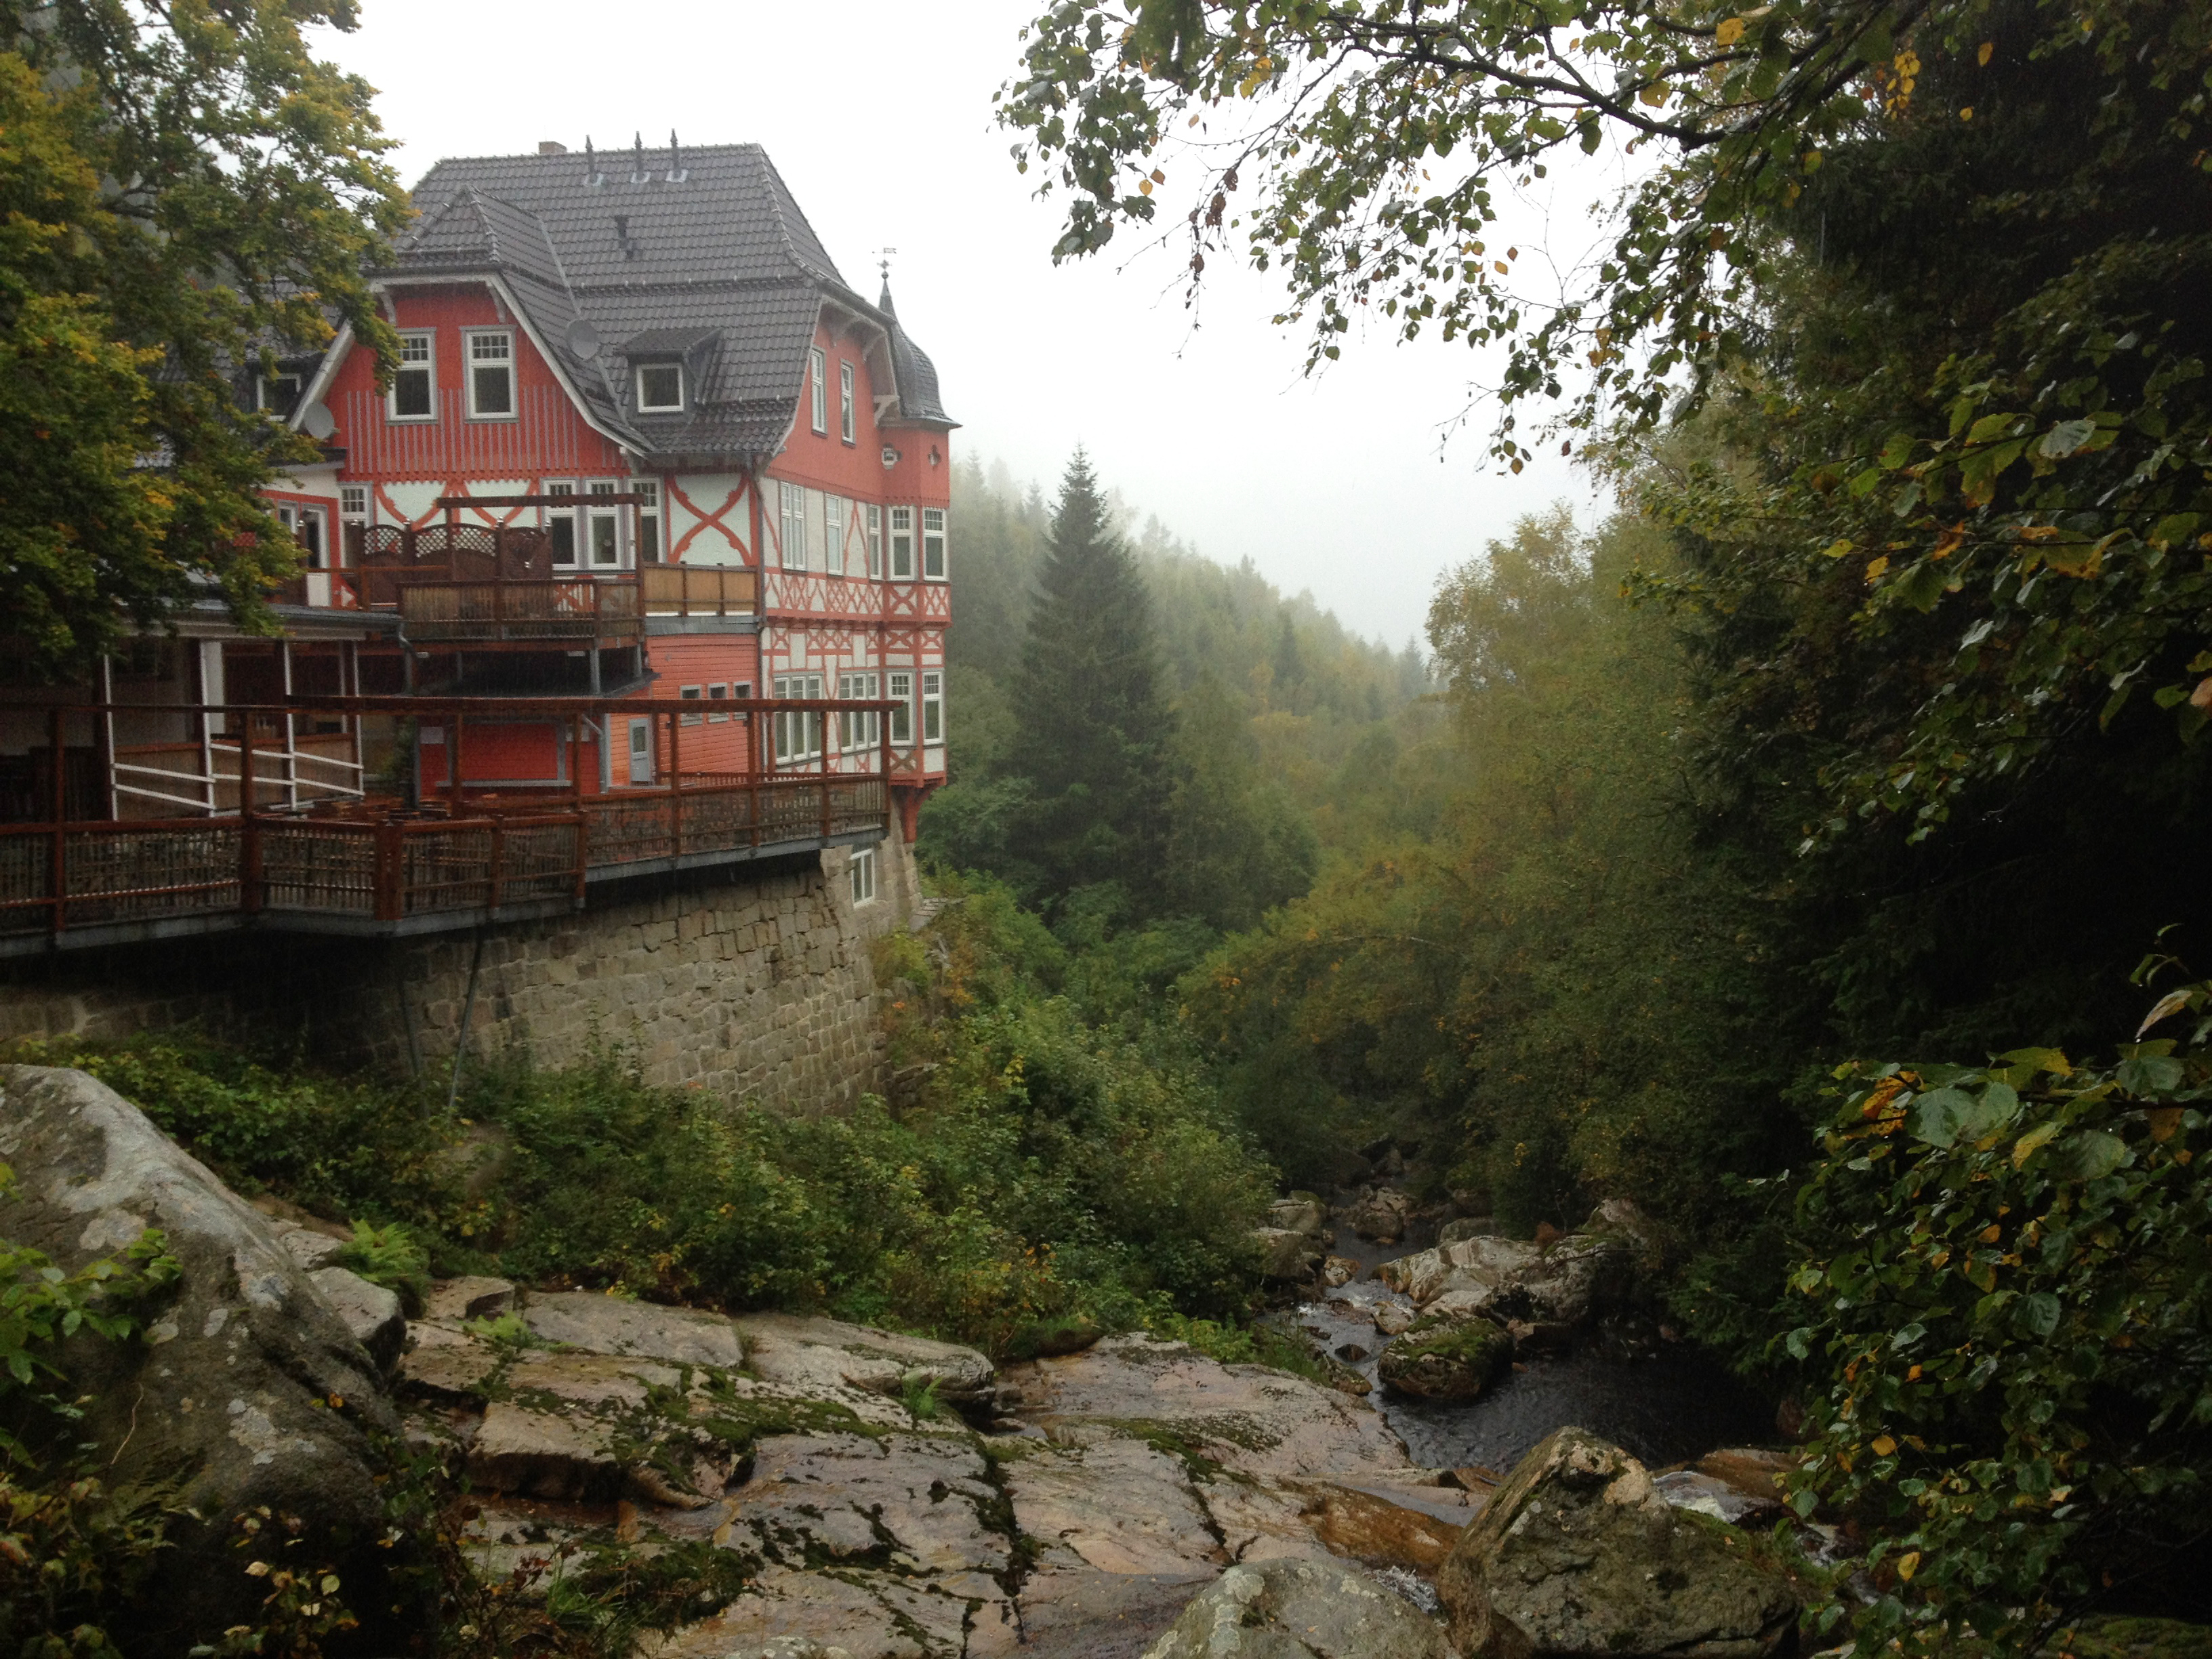 Family Club Harz Walking The Witches Trail From Inn To Inn Harz Mountains Germany